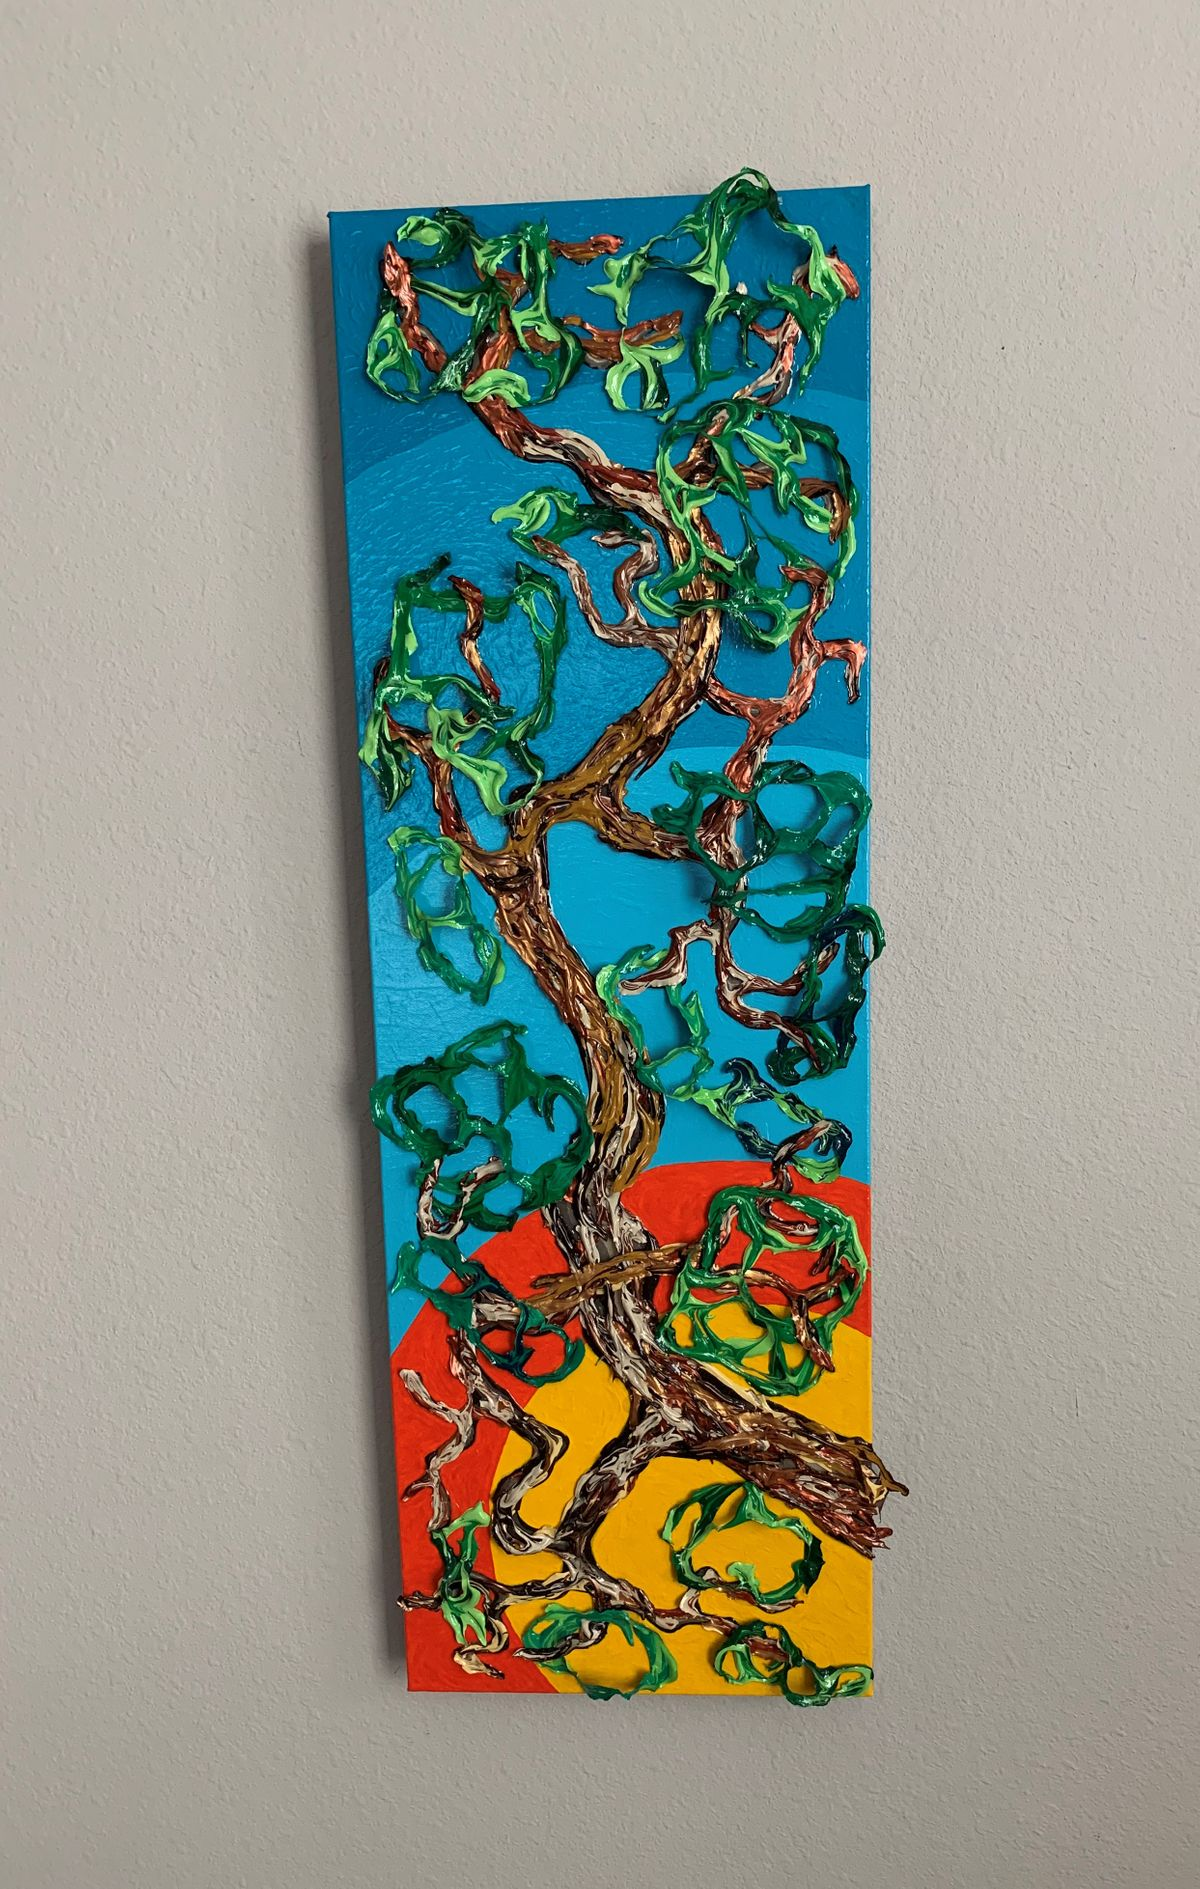 Tad_Daigle_Connections_and_Perspectives_Austin_Art_Austin_Artist_Austin_Gifts.jpg